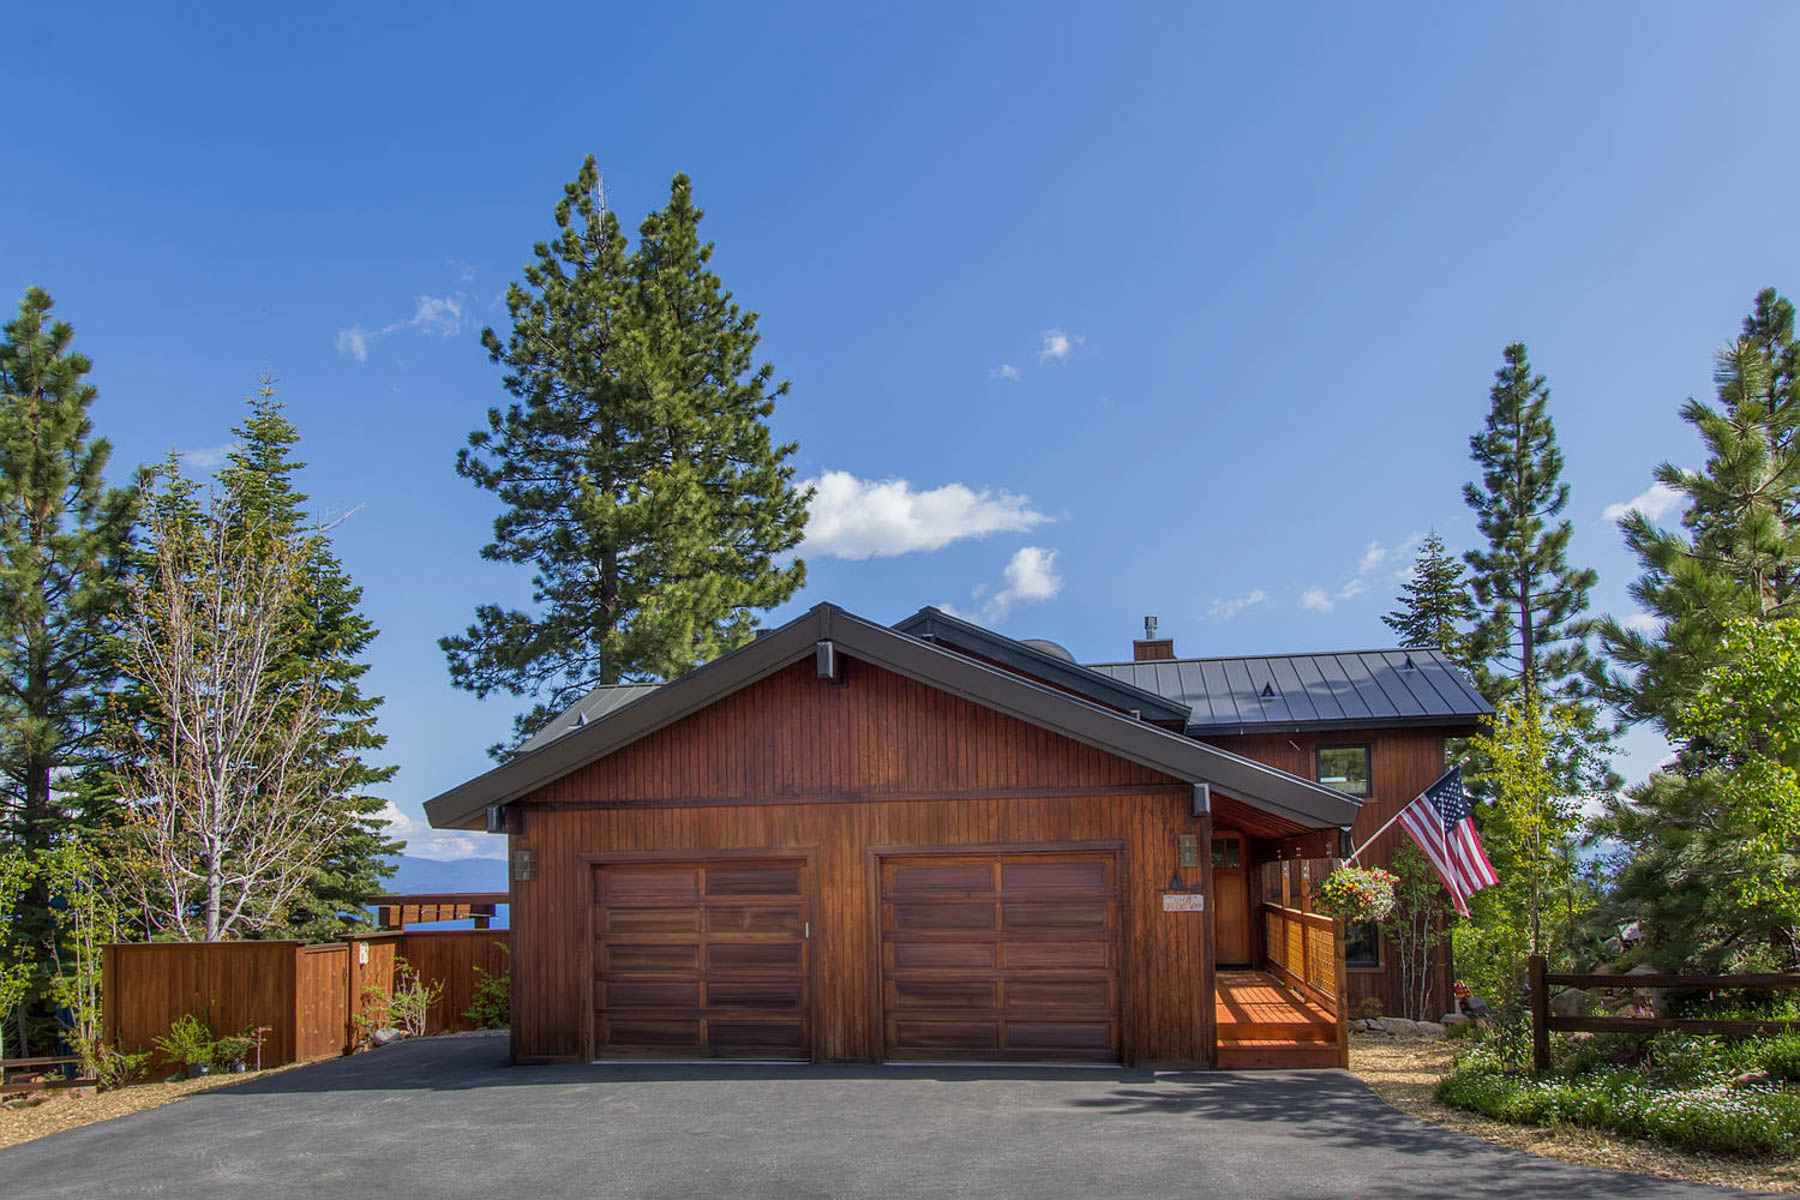 Single Family Home for Active at 1578 Queens Way, Tahoe Vista, Ca 96148 1578 Queens Way Tahoe Vista, California 96146 United States